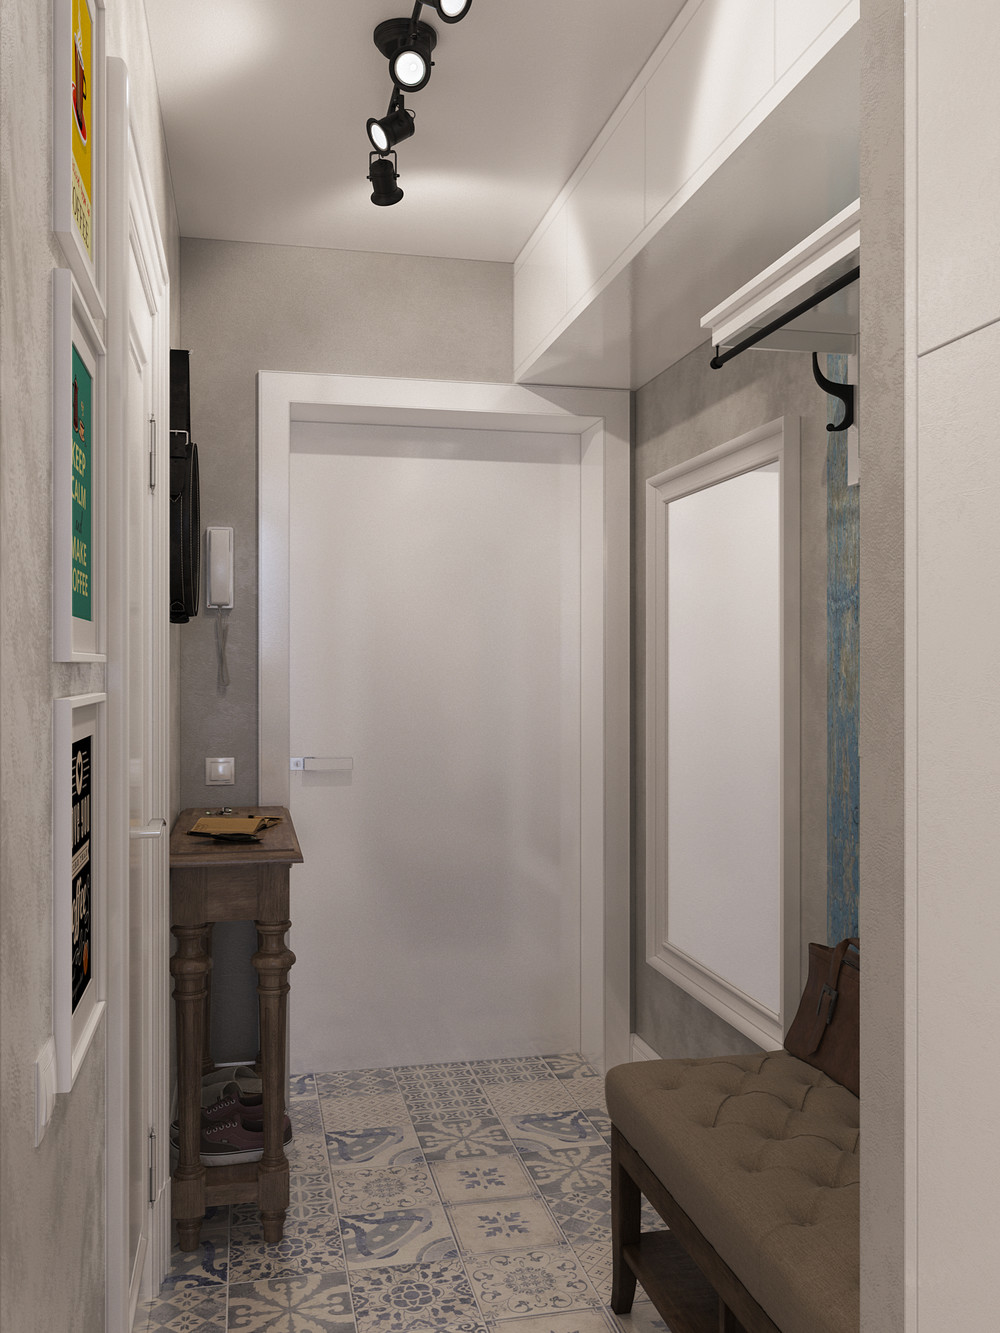 Designing For Super Small Spaces: 5 Micro Apartments